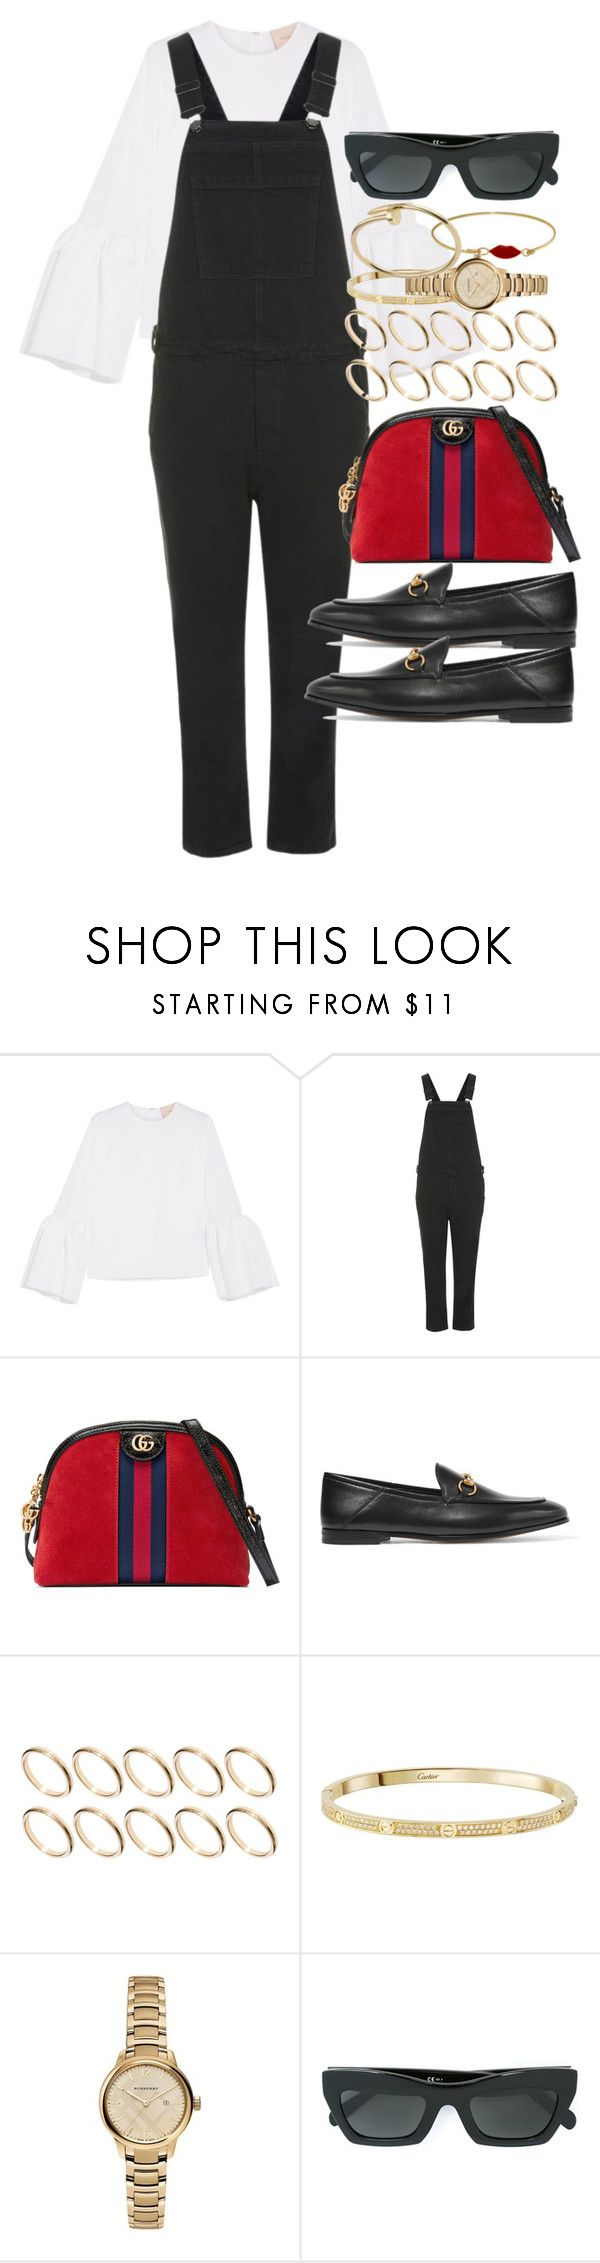 """""""Sin título #4631"""" by hellomissapple ❤ liked on Polyvore featuring Roksanda, Topshop, Gucci, ASOS, Cartier, Burberry and CÉLINE"""